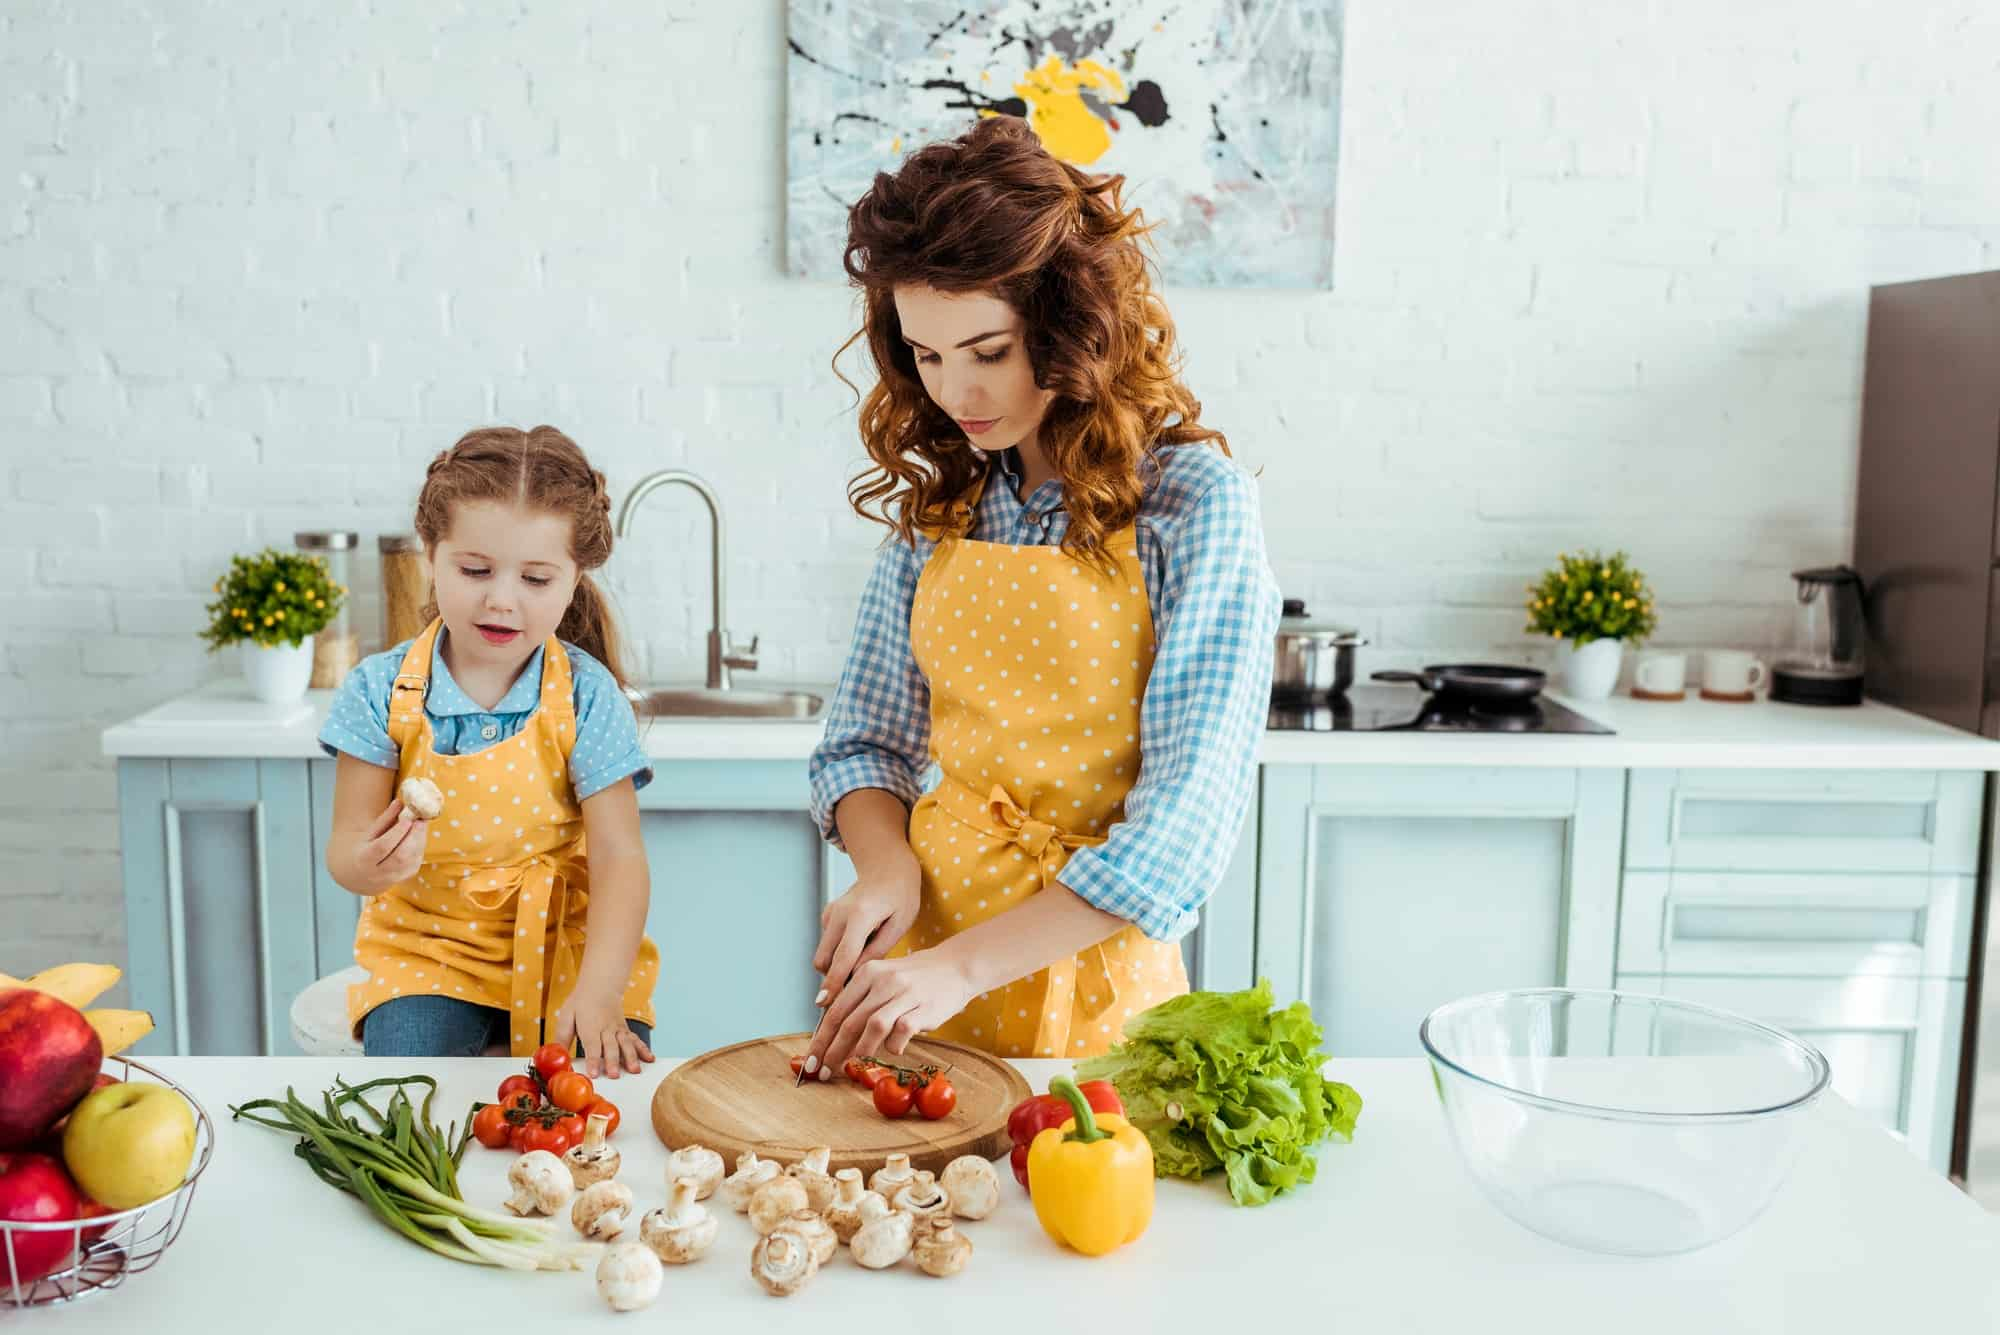 a mother and child preparing vegetables together in the kitchen